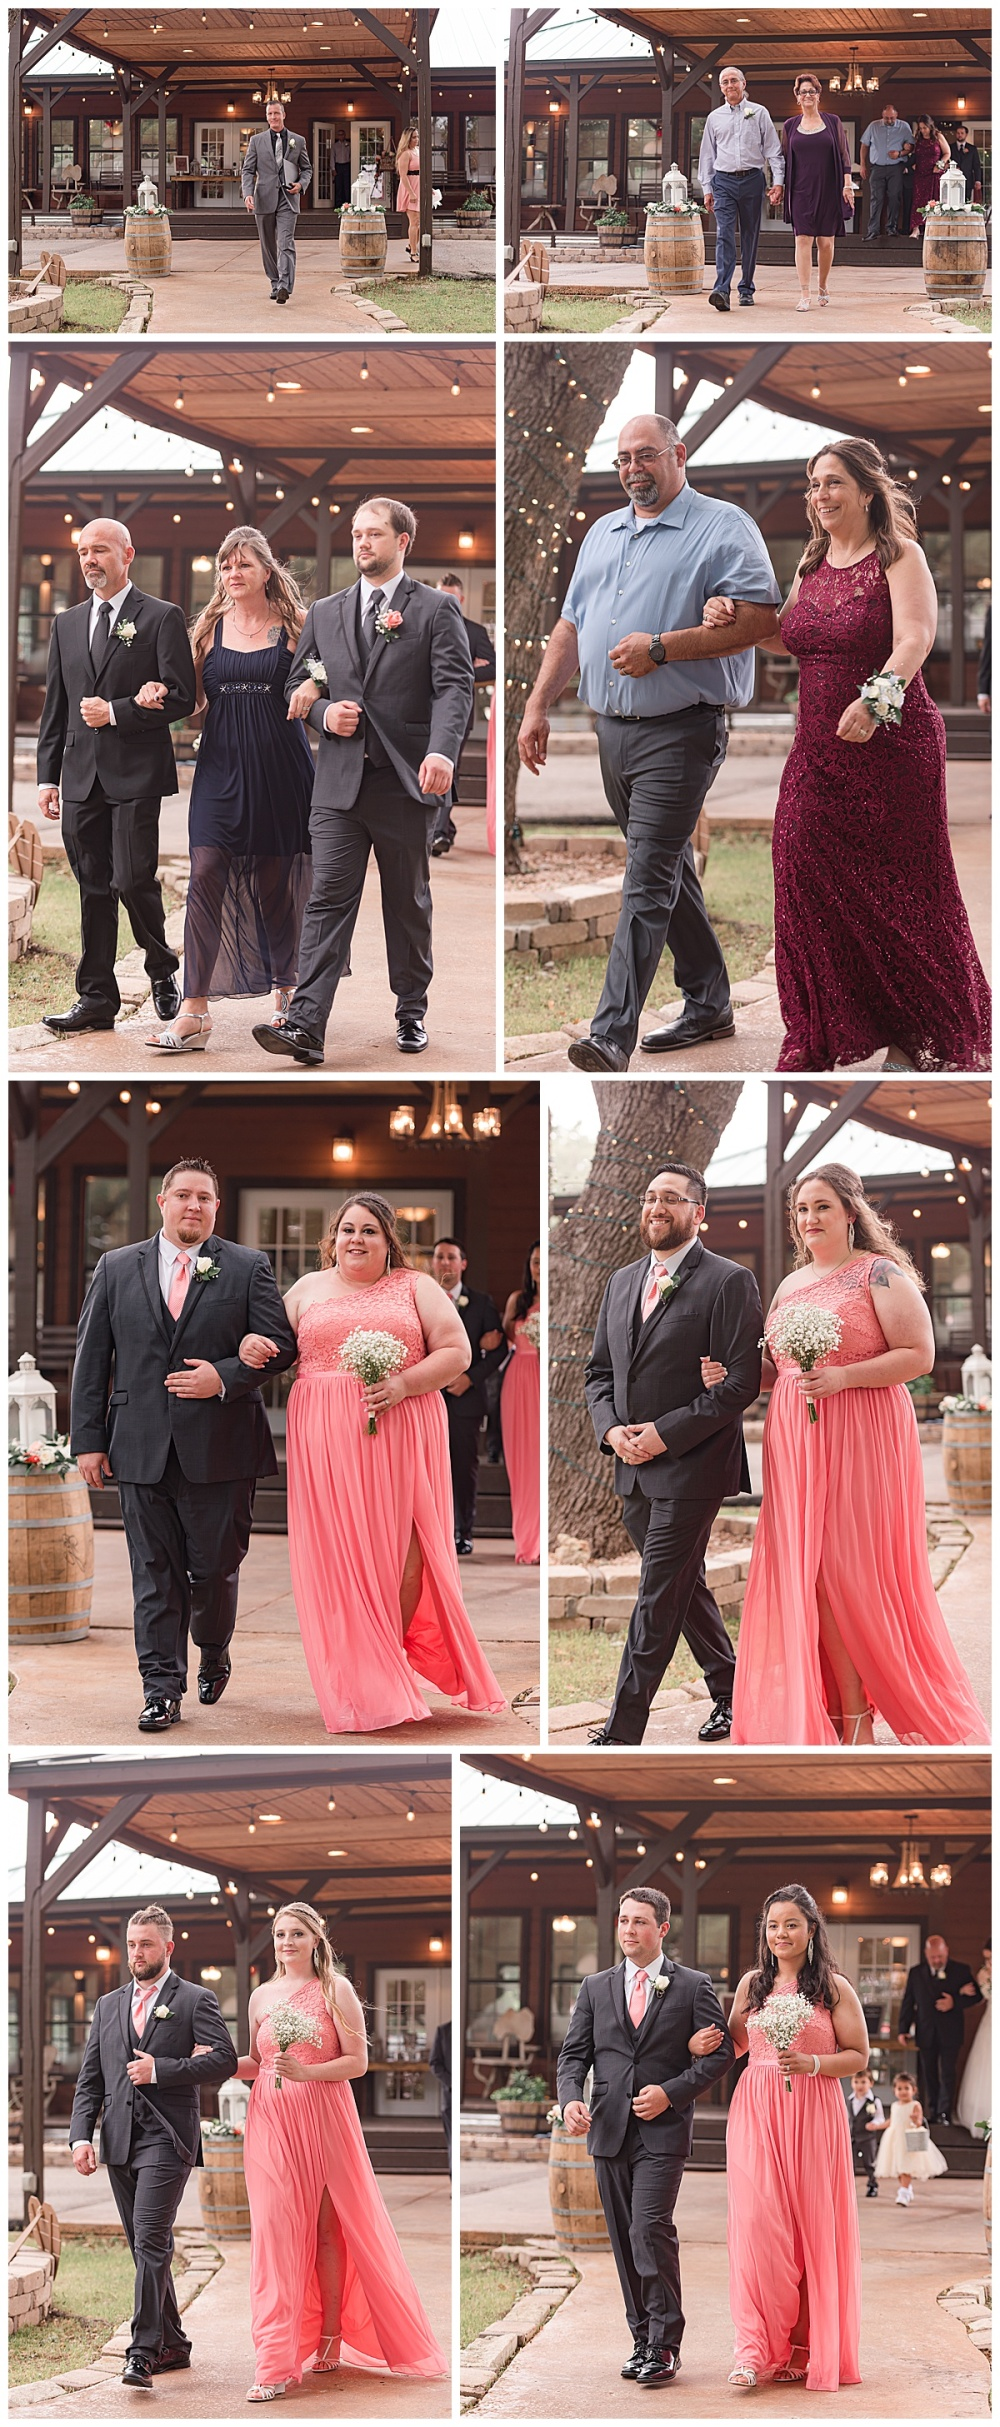 Michael-Tiffany-Wedding-New-Braunfels-Texas-Canyon-Lake-Cabins-and-Cottages-Carly-Barton-Photography_0019.jpg